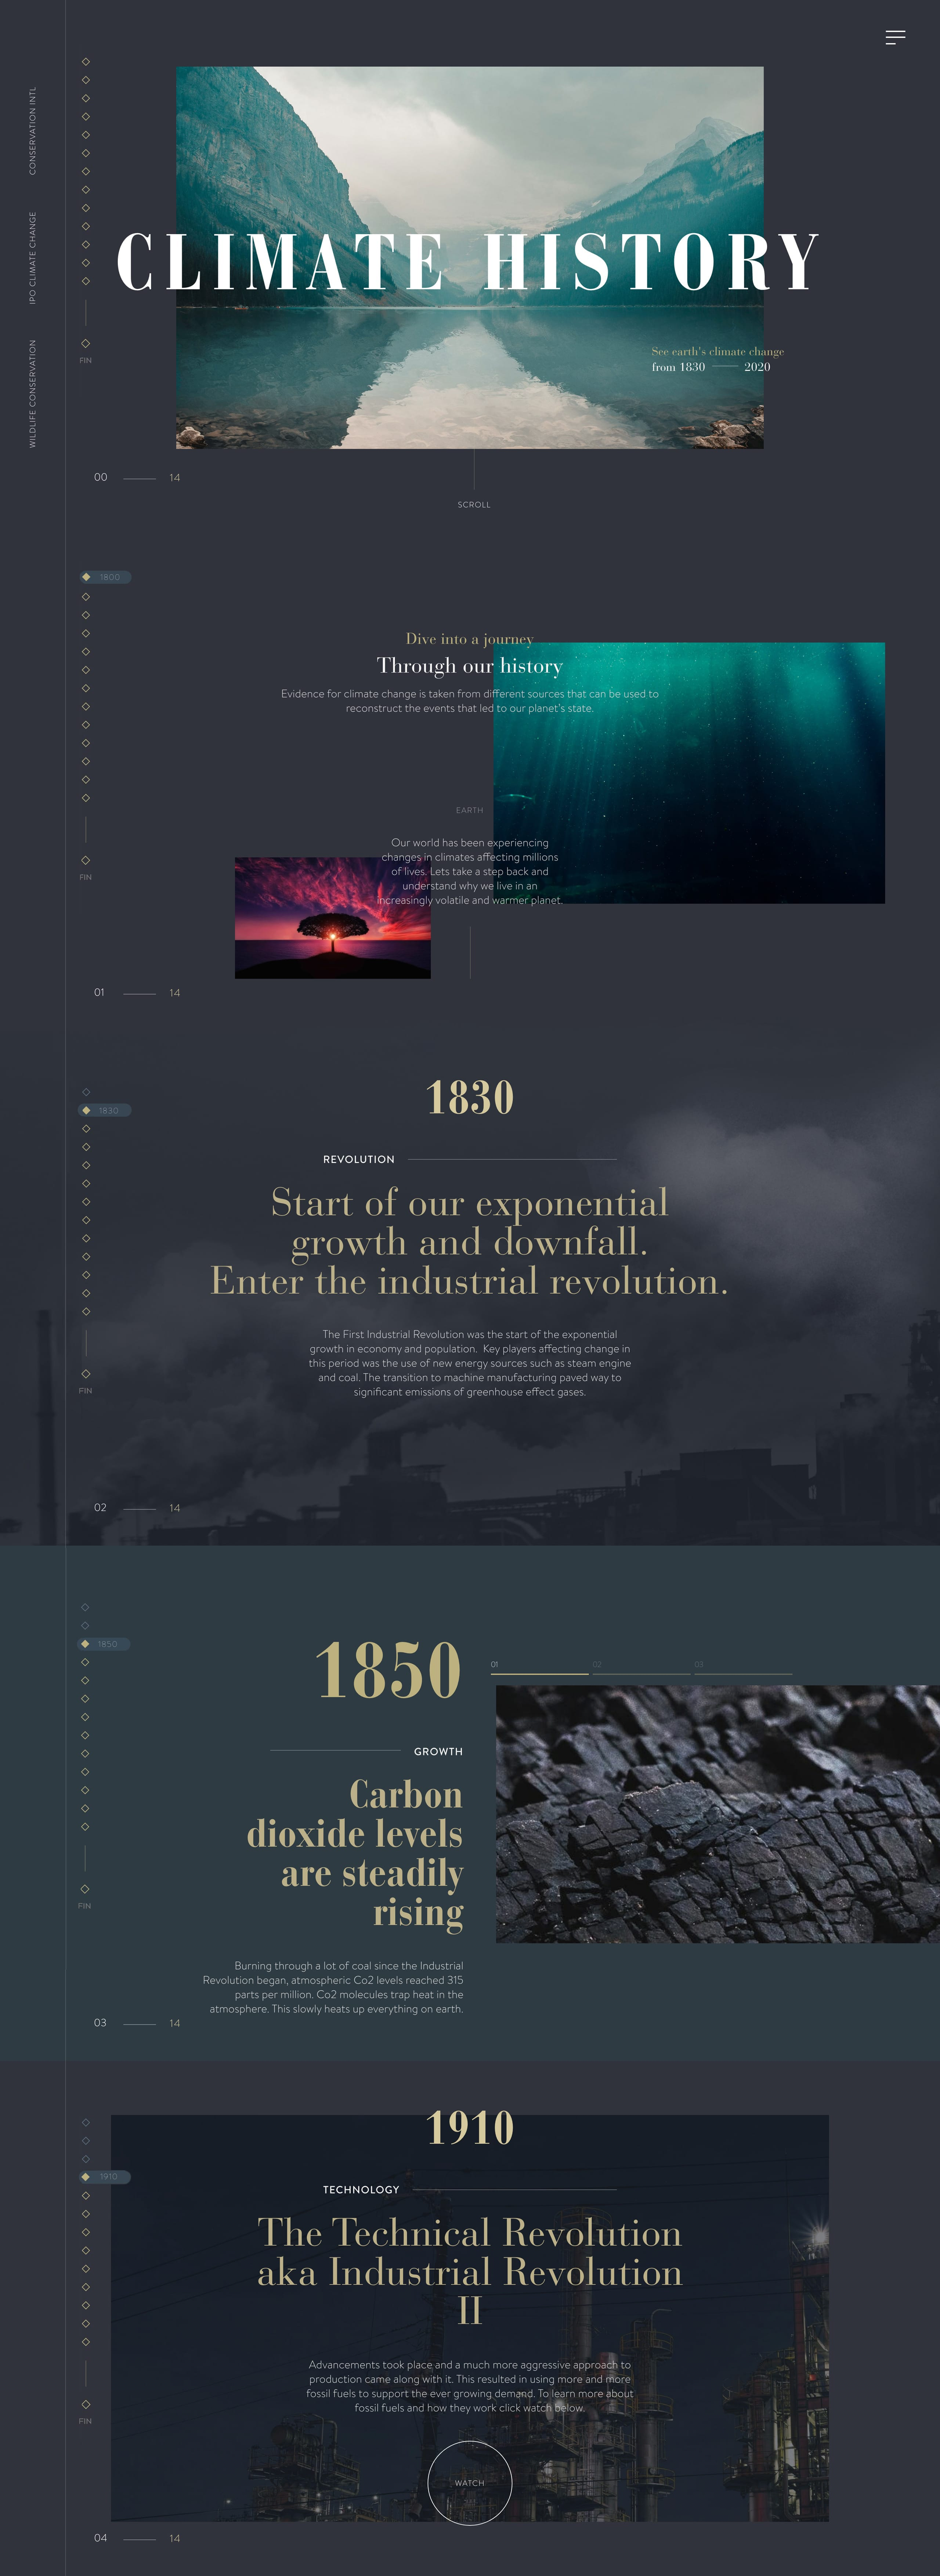 Climate History Website Screenshot